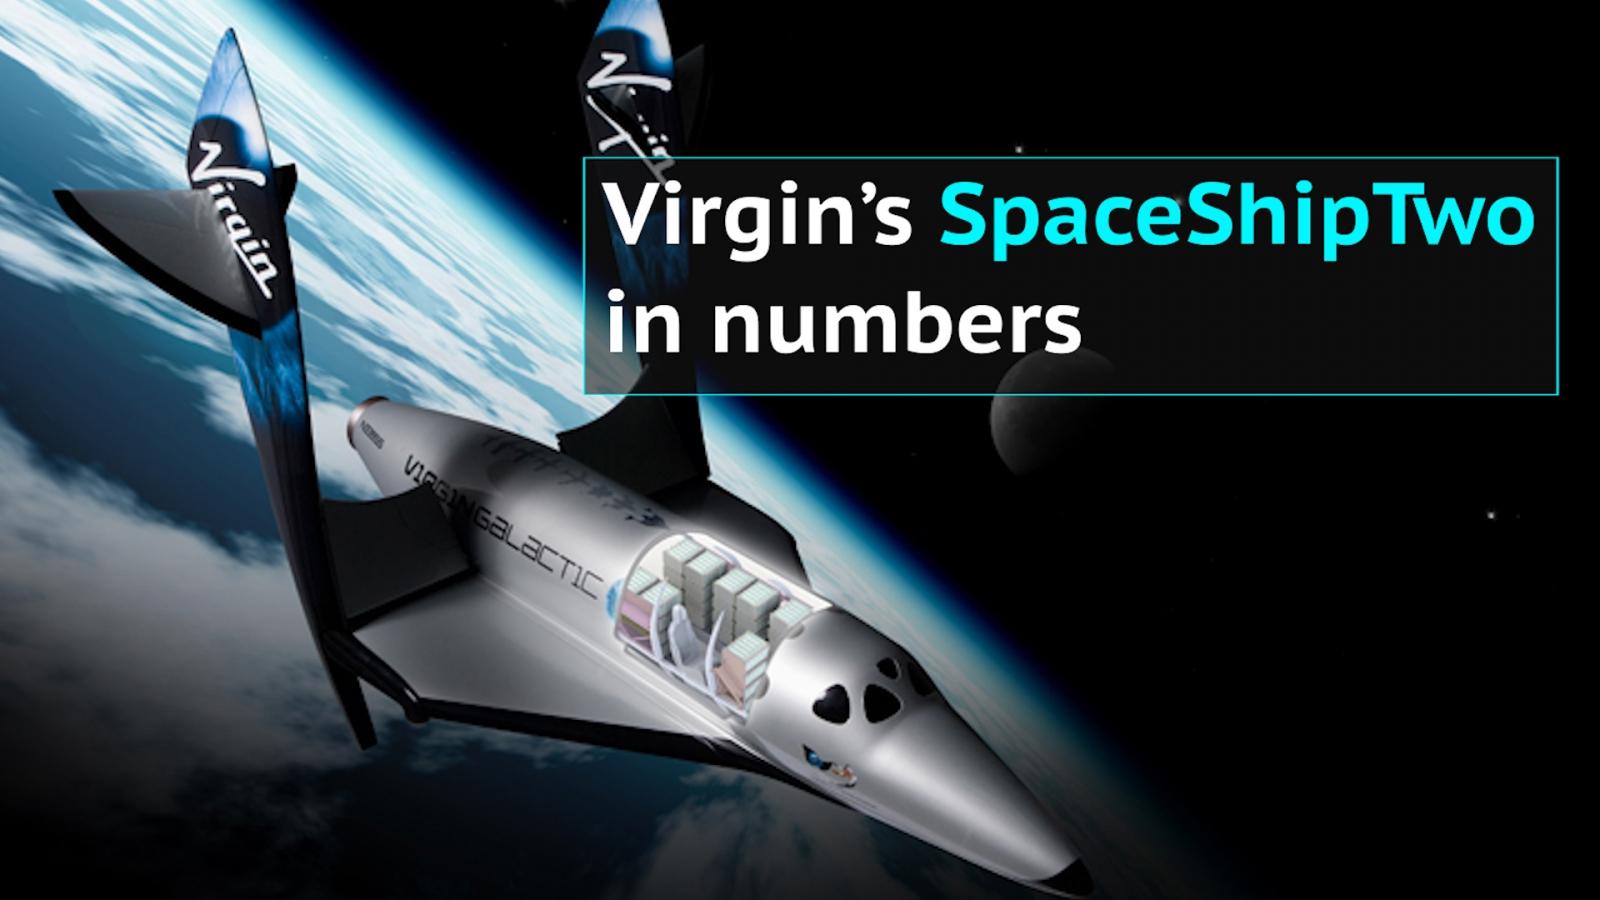 Virgin Galactic SpaceShipTwo in numbers